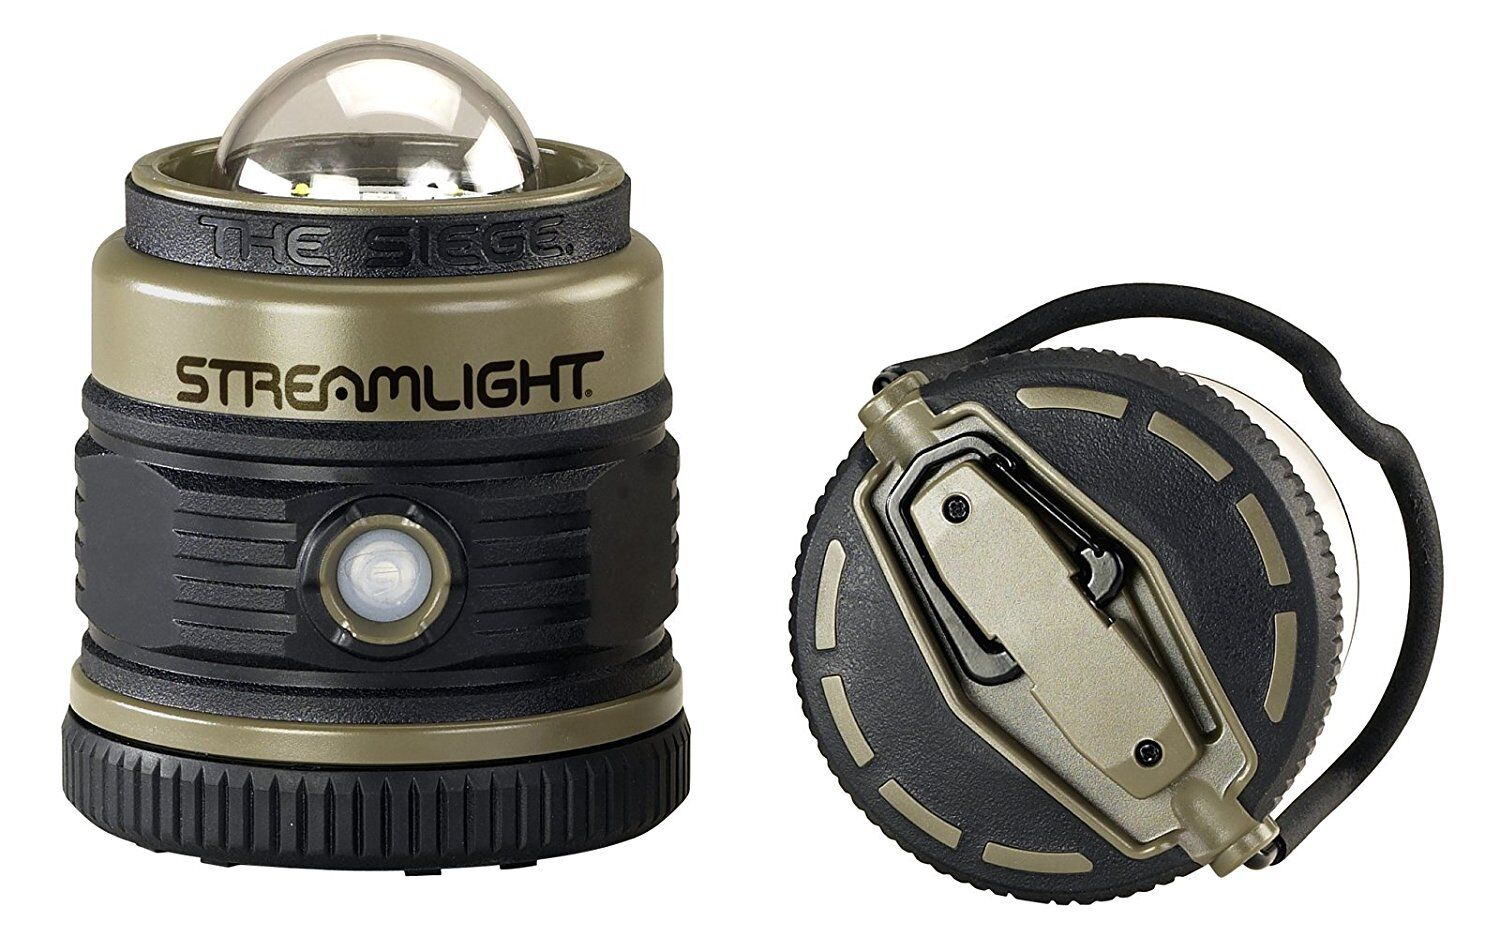 Streamlight 44931 Die Laterne Belagerung Laterne Die - Coyote 315e16